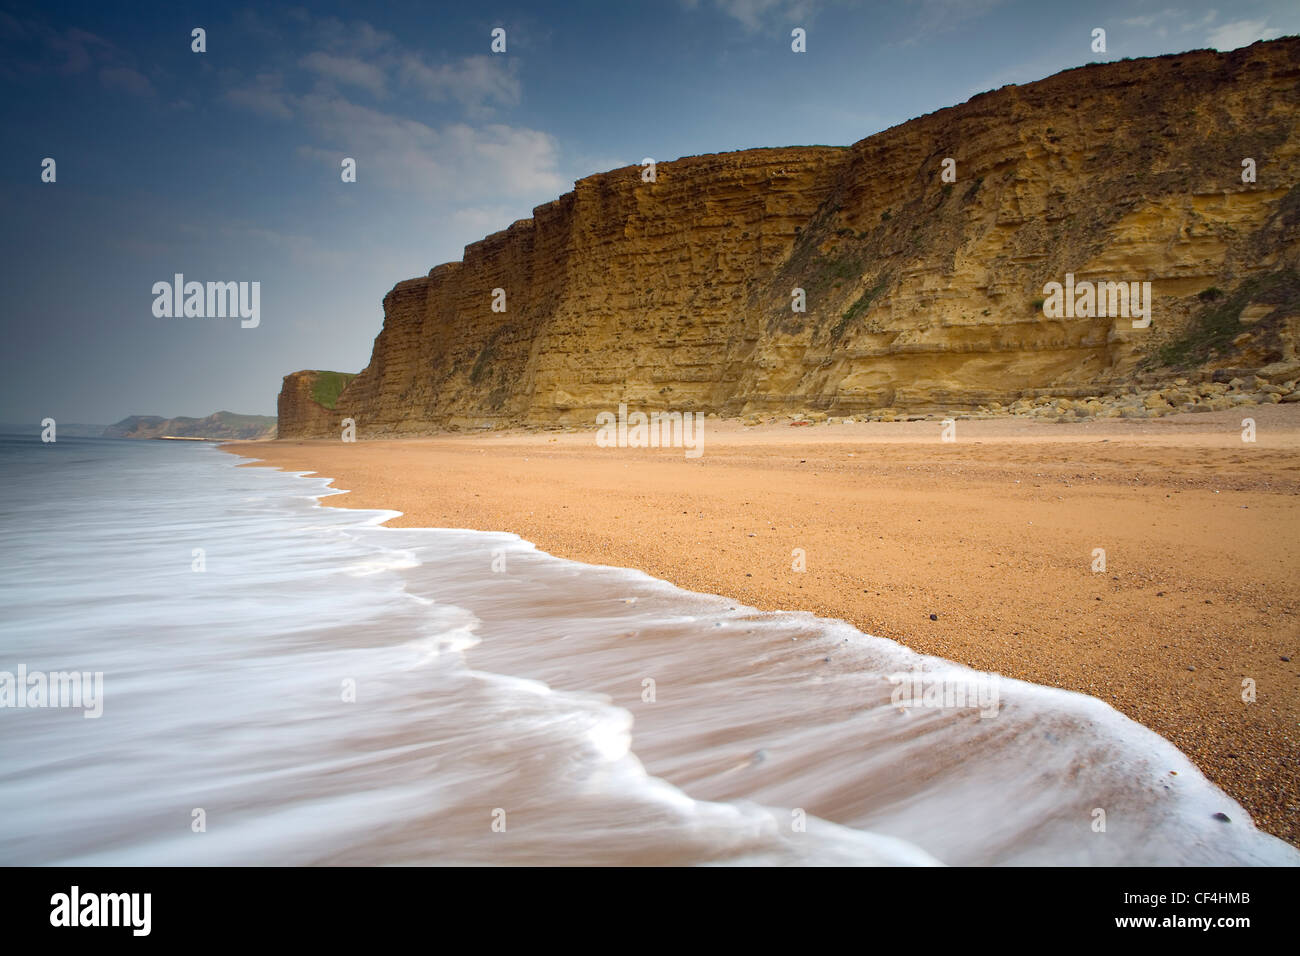 A view toward Burton Cliff. The Jurassic Coast consists of Triassic, Jurassic and Cretaceous cliffs, spanning the - Stock Image